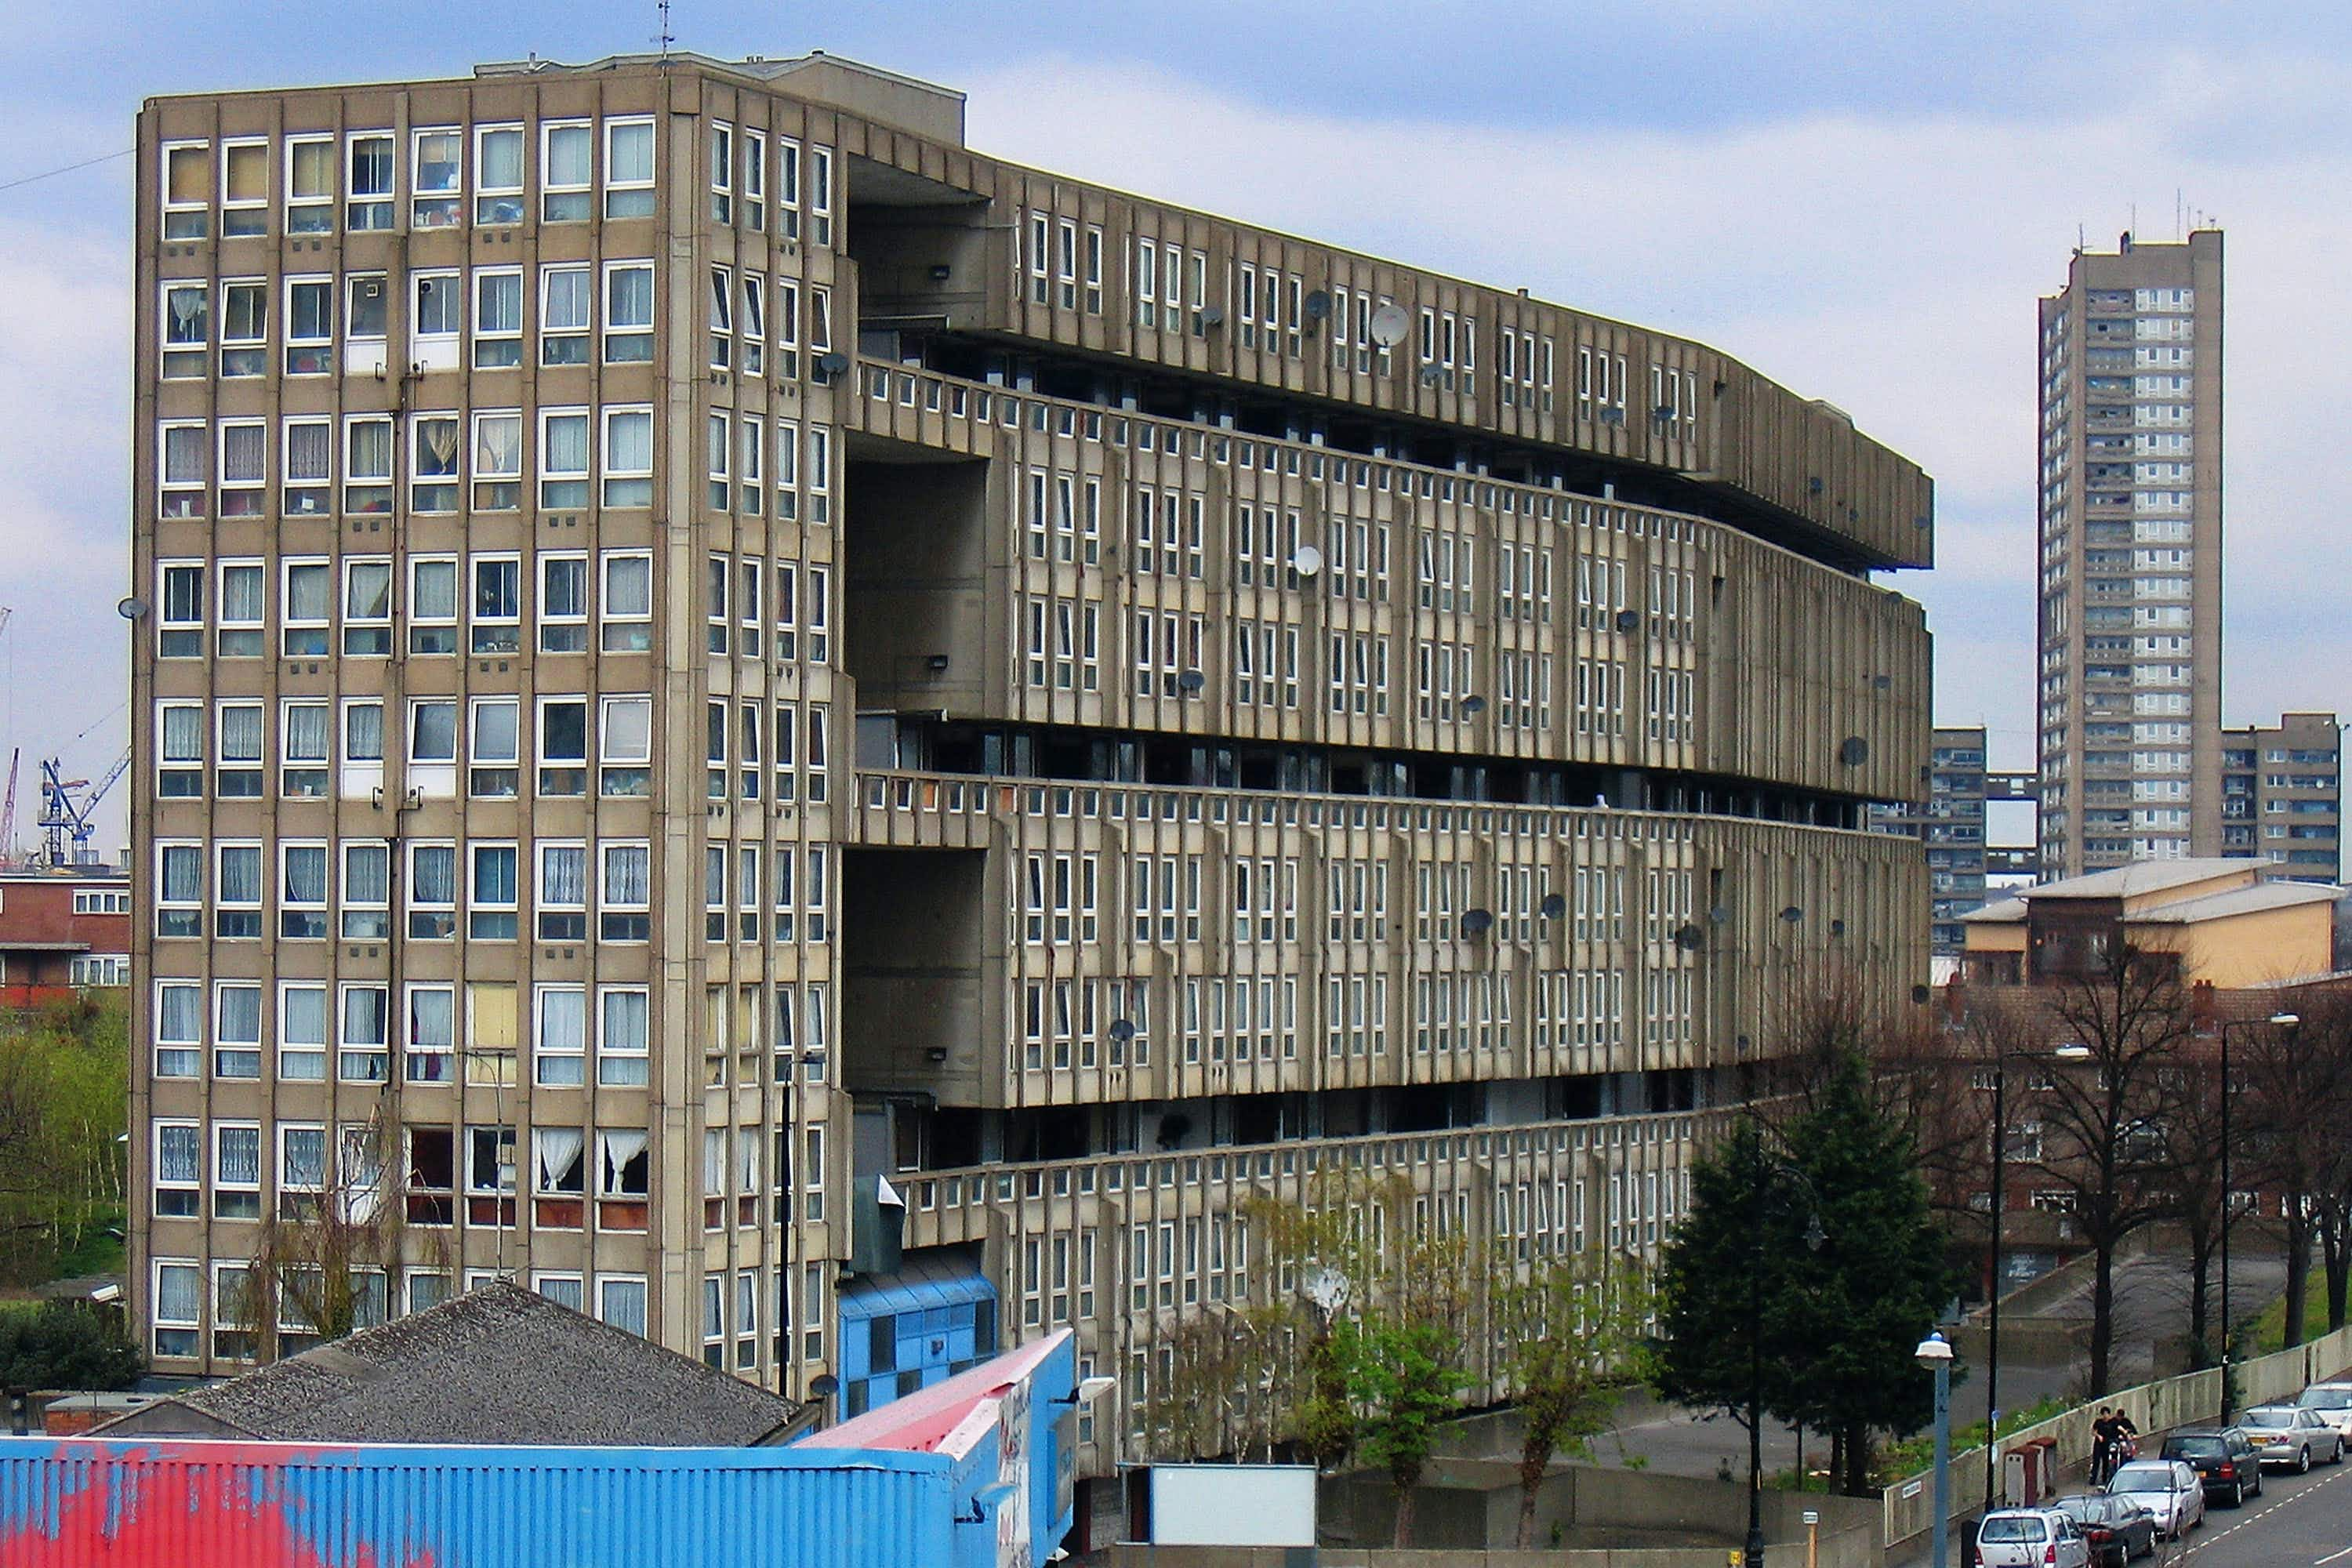 A section of a London council estate is being taken to Venice Biennale